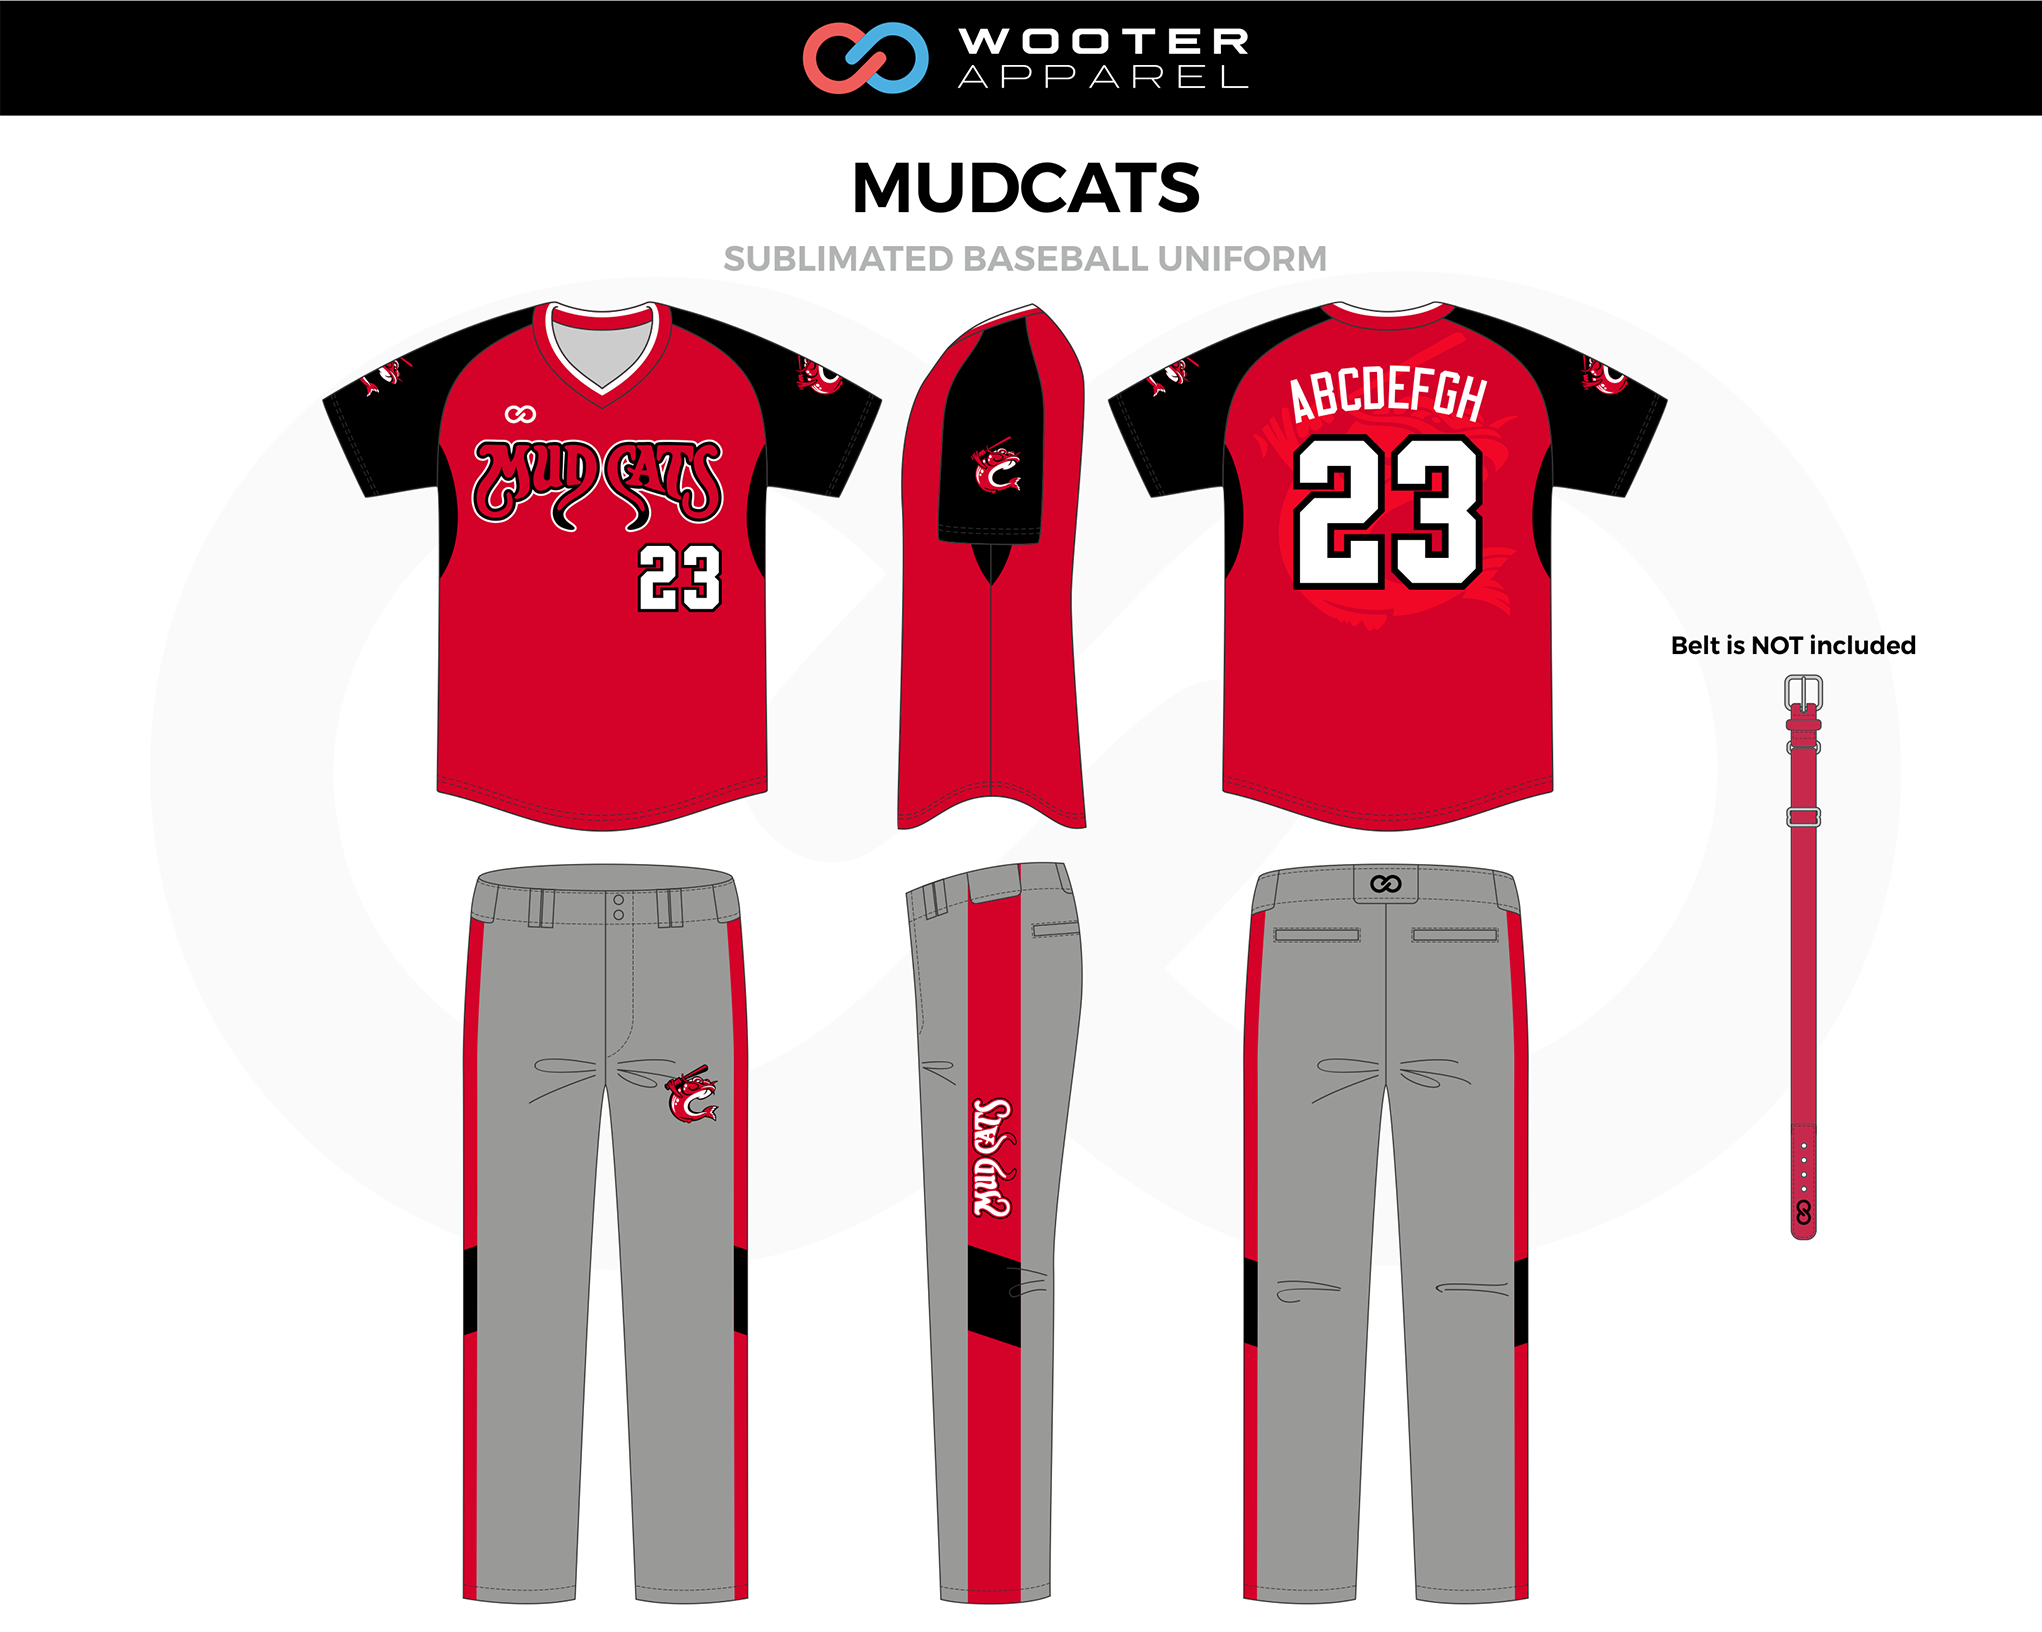 MUDCATS Red Gray White Black Sublimated Baseball Uniform, Jersey and Pants